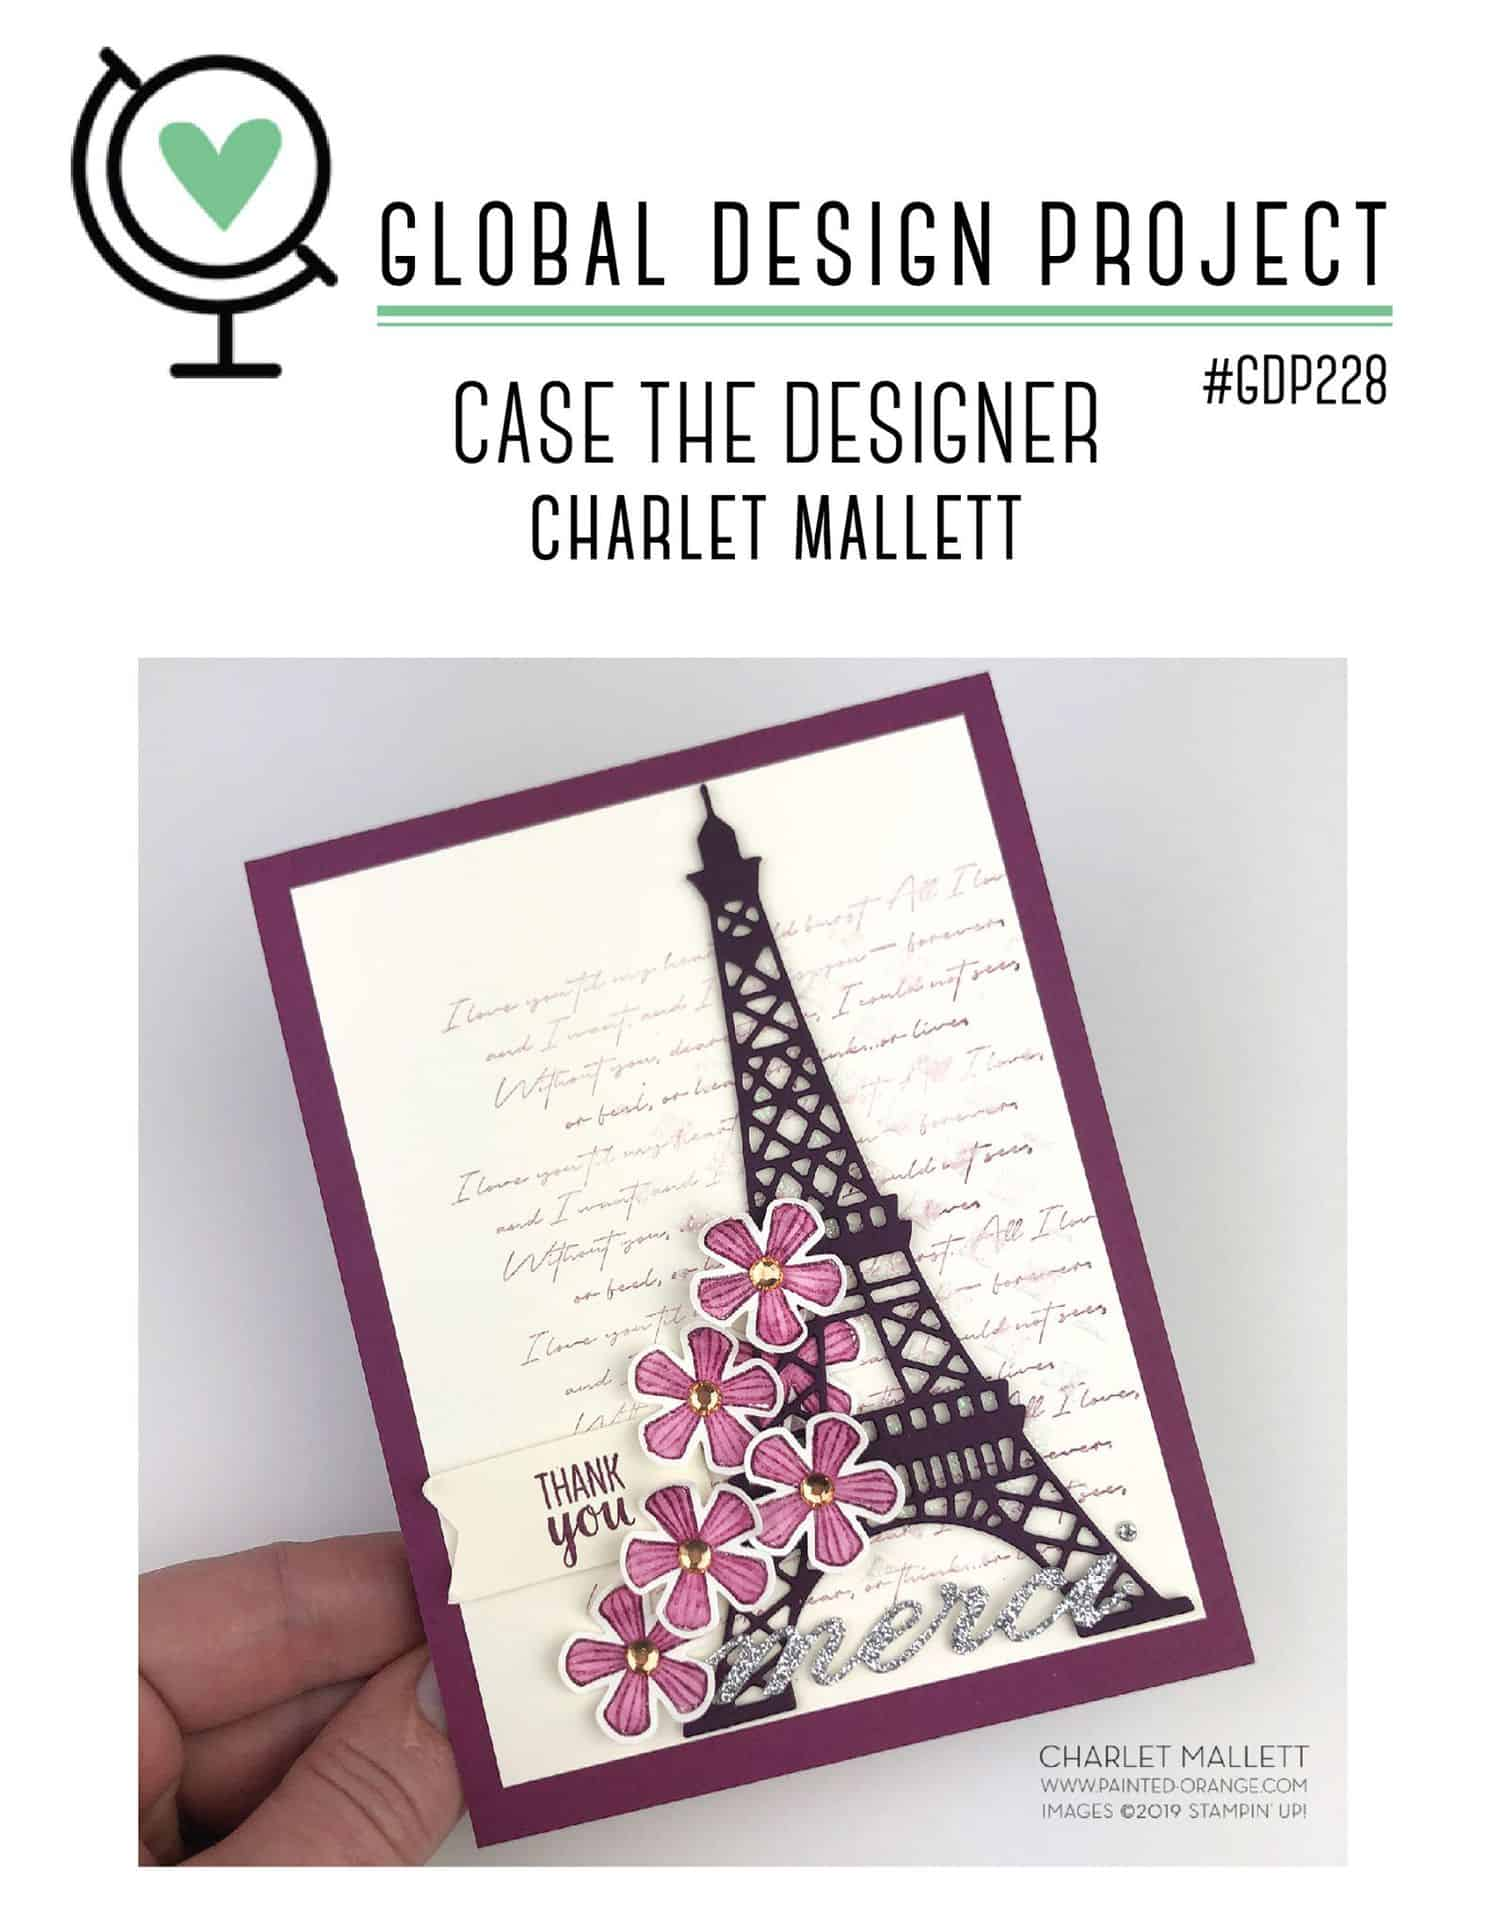 Global Design Project #228